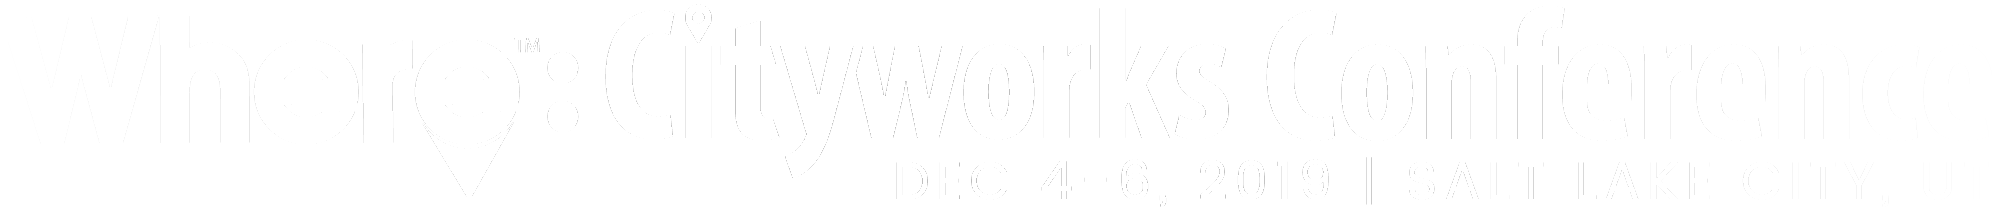 Where: Cityworks Conference